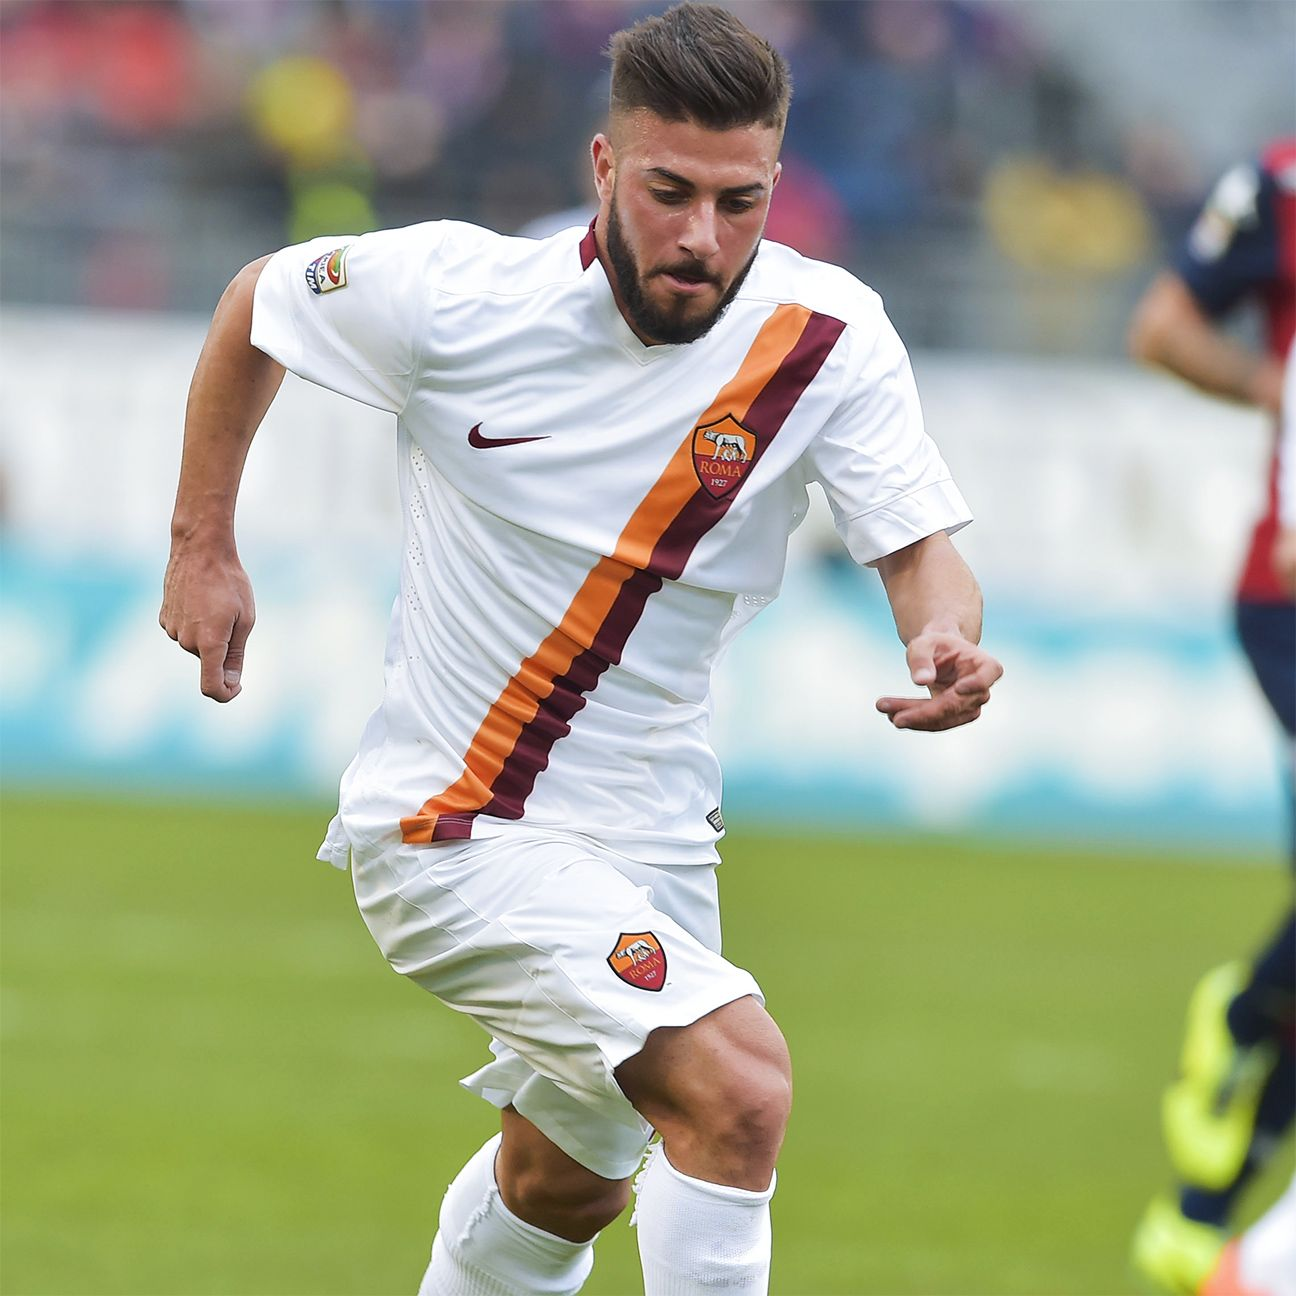 Striker Daniele Verde served up two assists in his first ever Roma start.